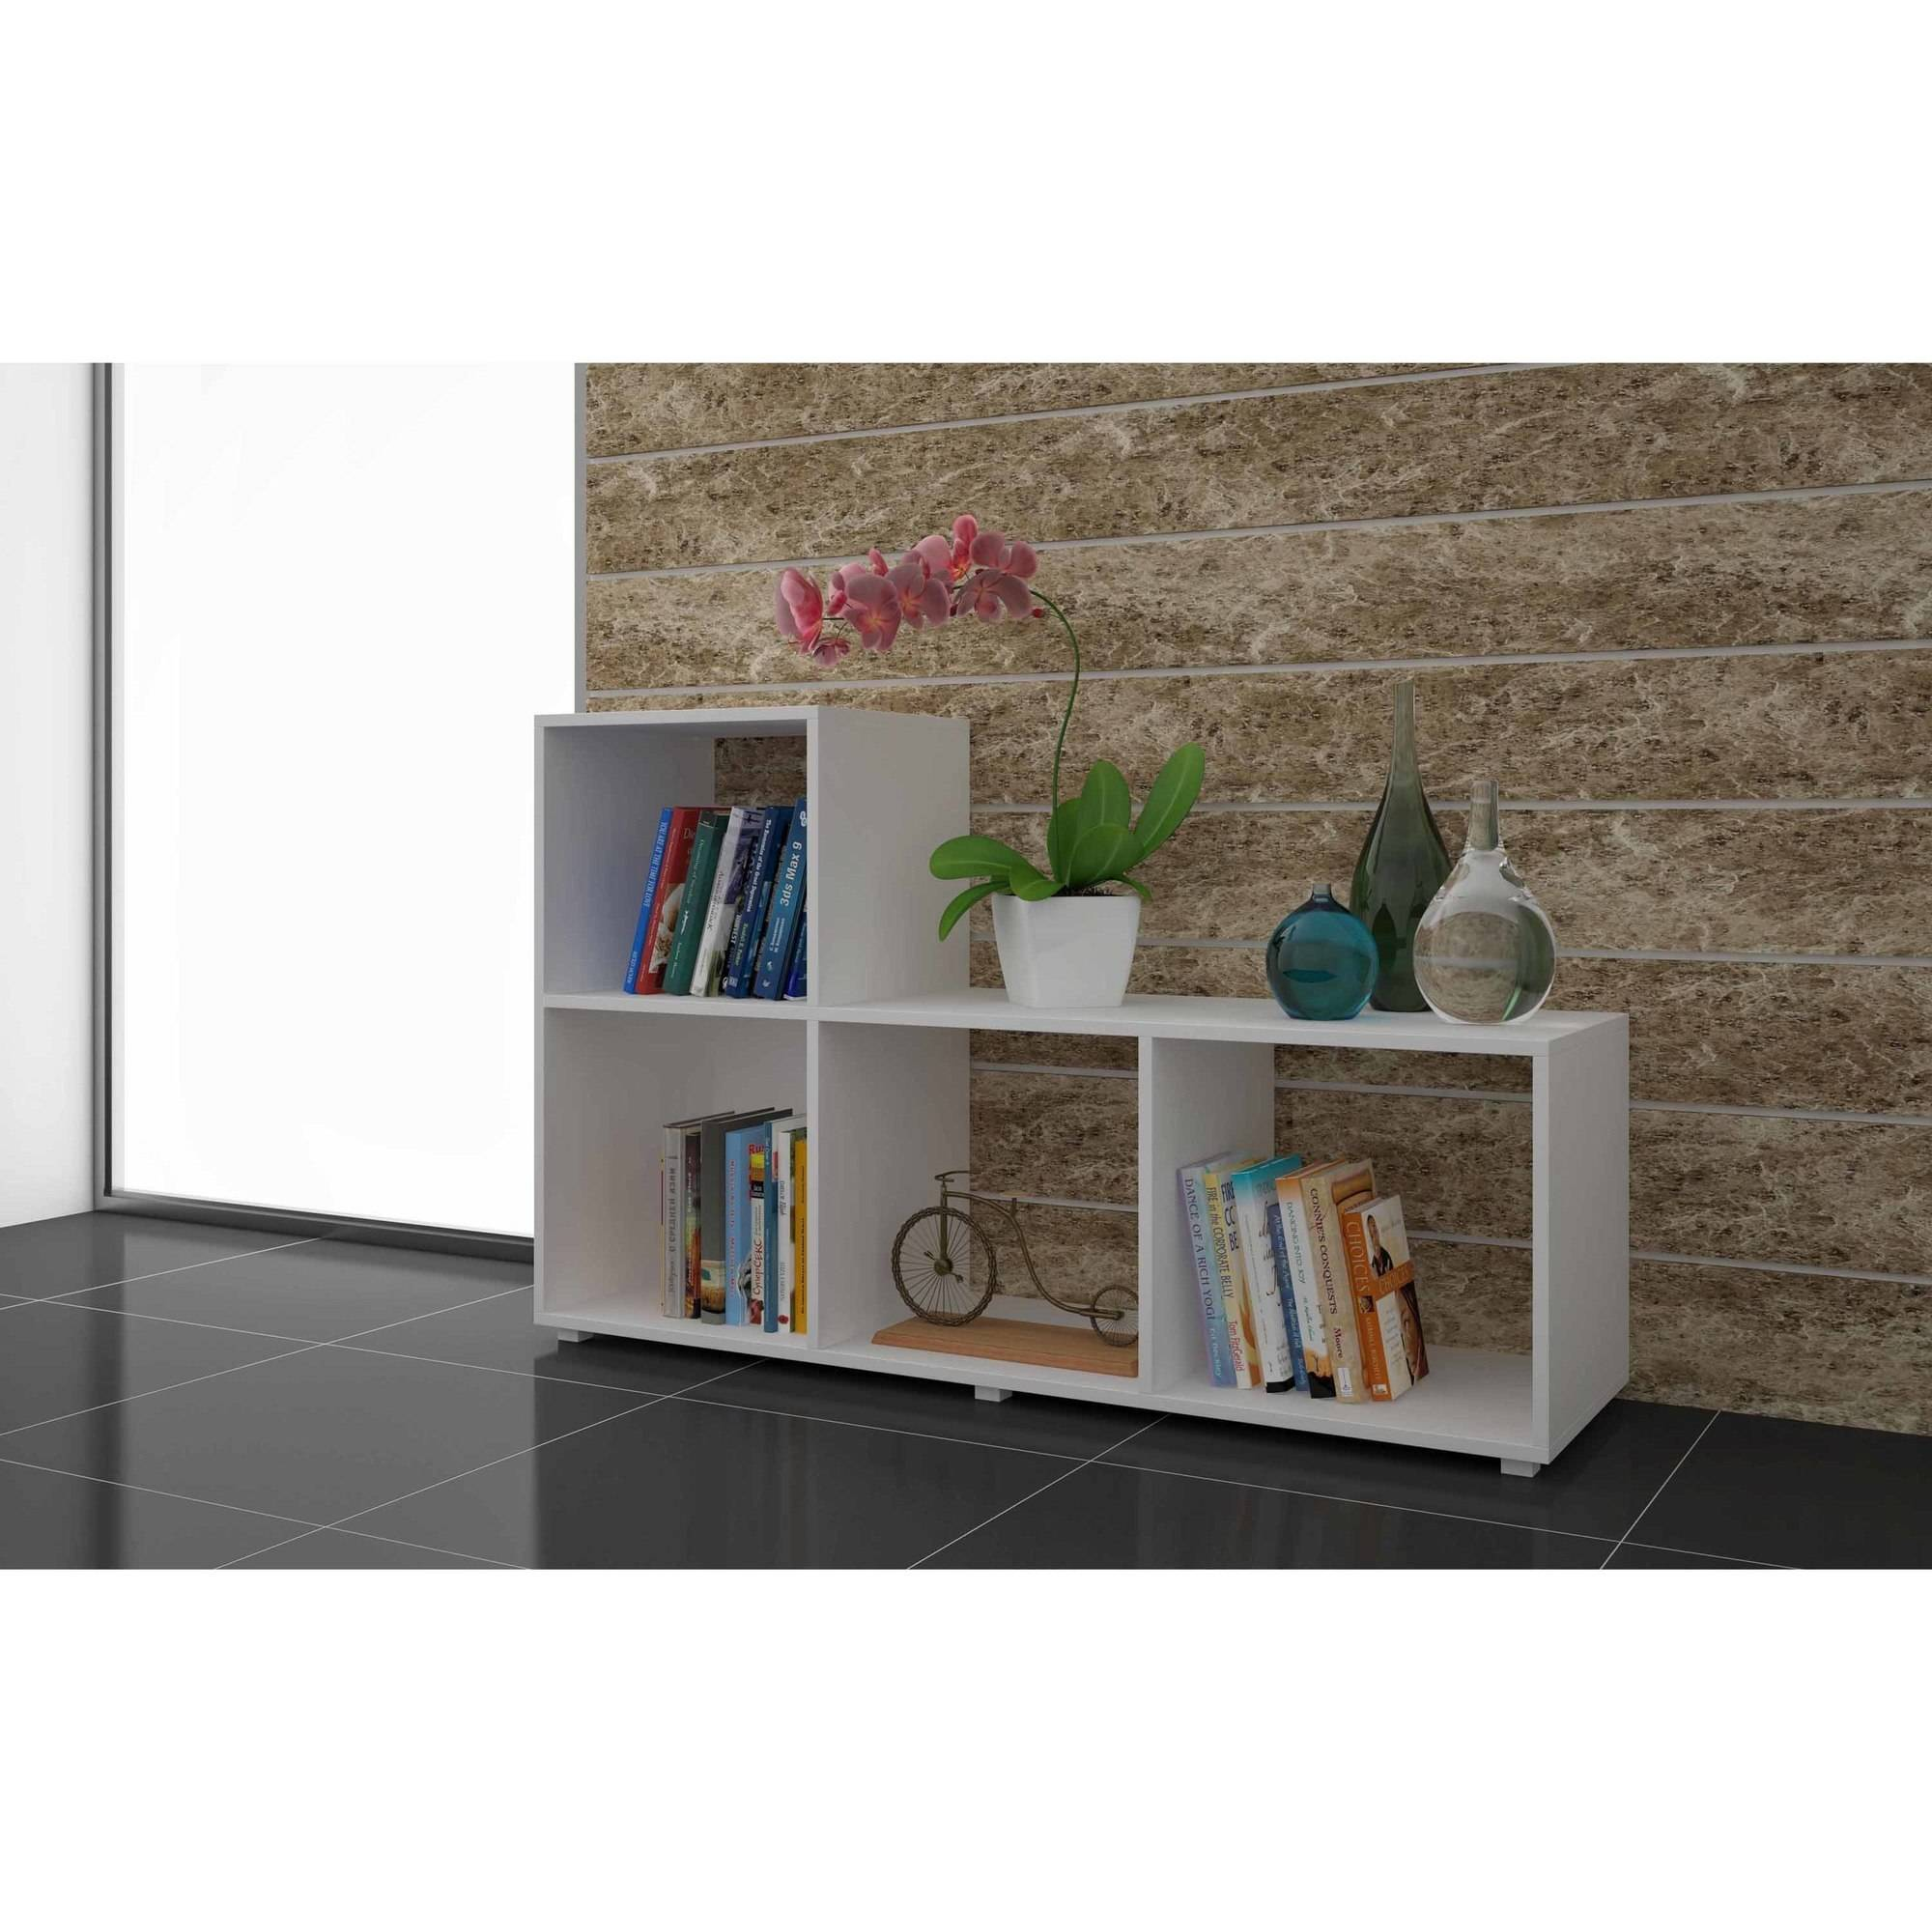 Mendocino Filbert Sleek L Cubbies, White